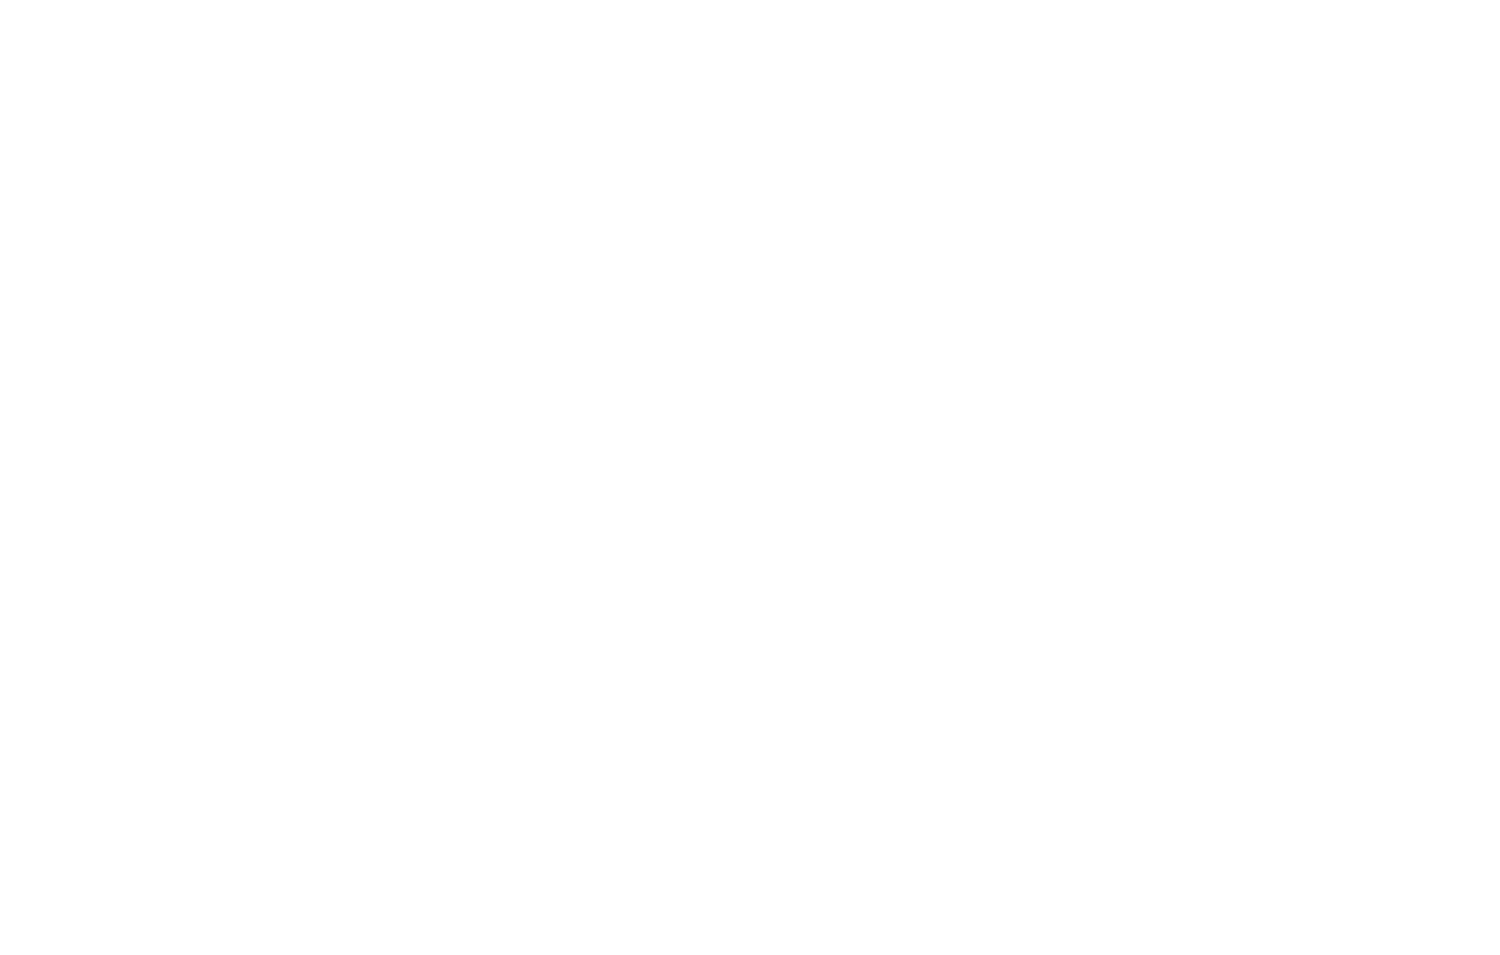 ICONIC CAPITAL GROUP